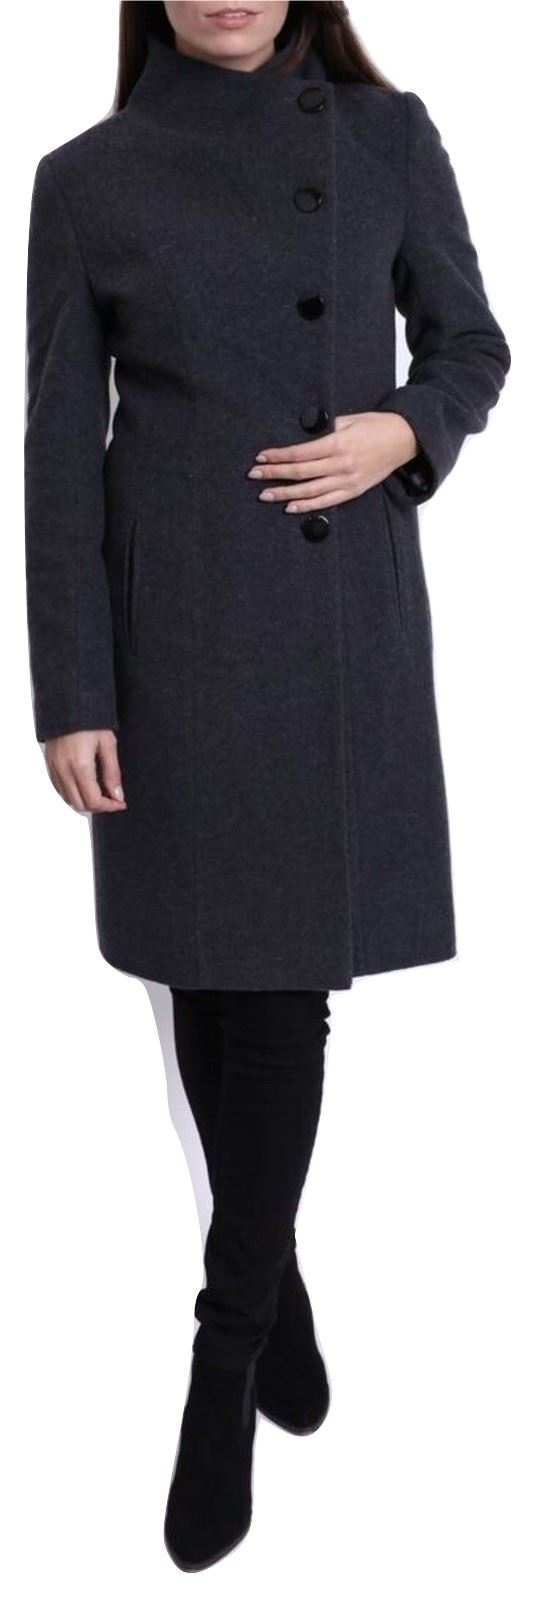 De-La-Creme-Womens-Funnel-Neck-Wool-amp-Cashmere-Blend-Keep-It-Simple-Coat thumbnail 12